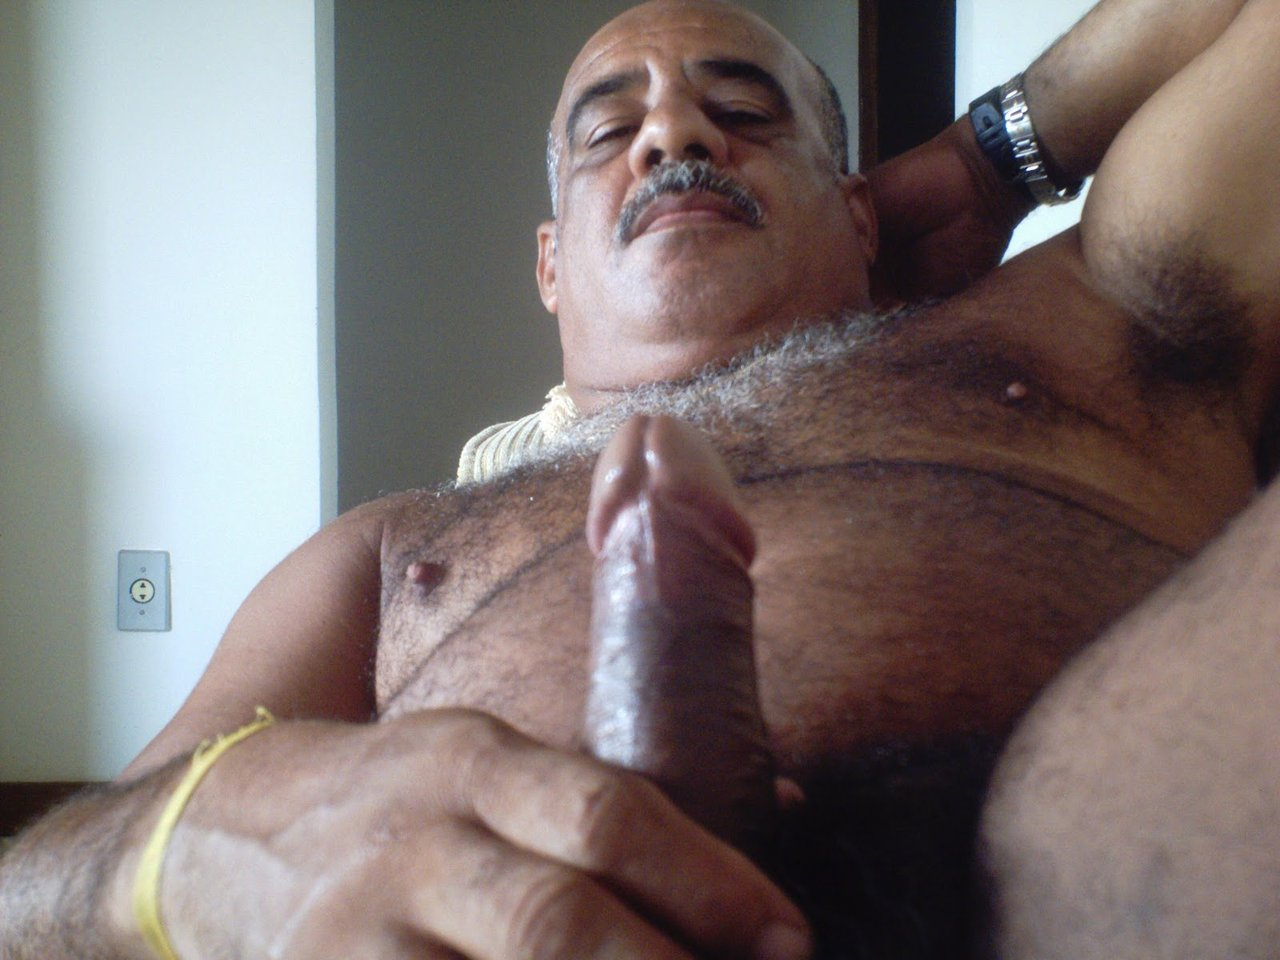 Hot old men nude wallpaper fucked pic